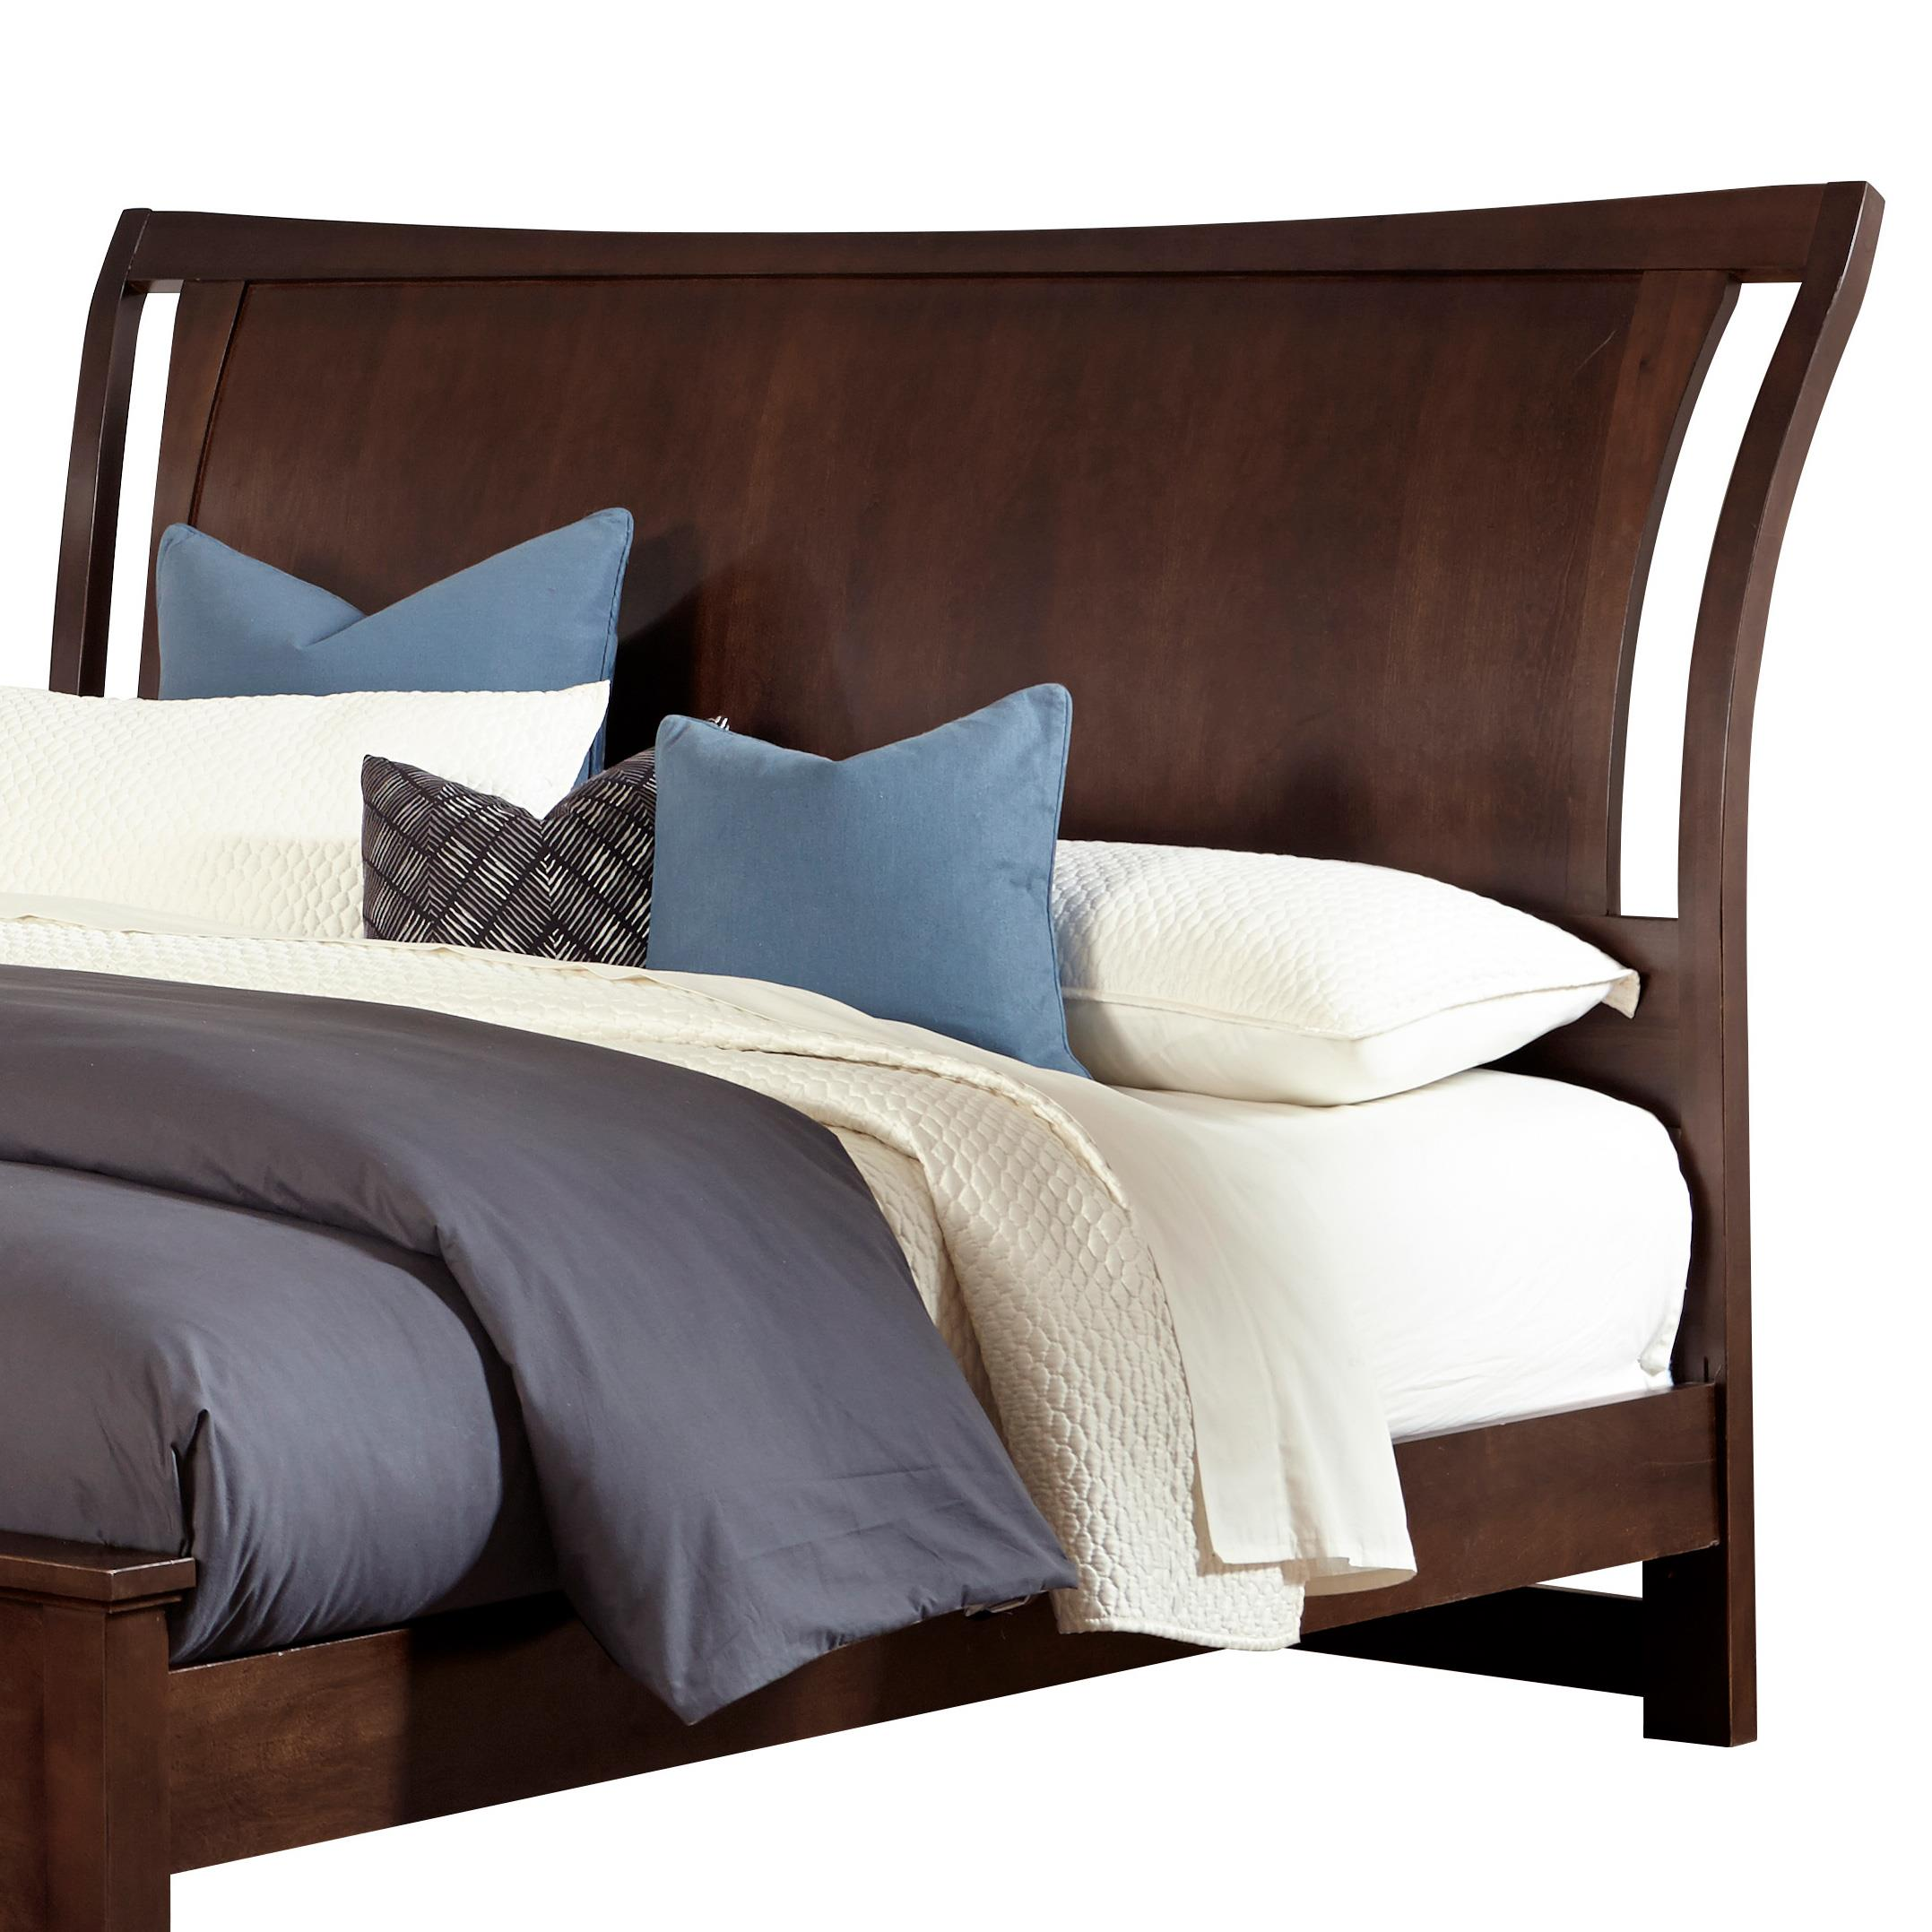 Vaughan Bassett Commentary King Wing Headboard - Item Number: 392-661